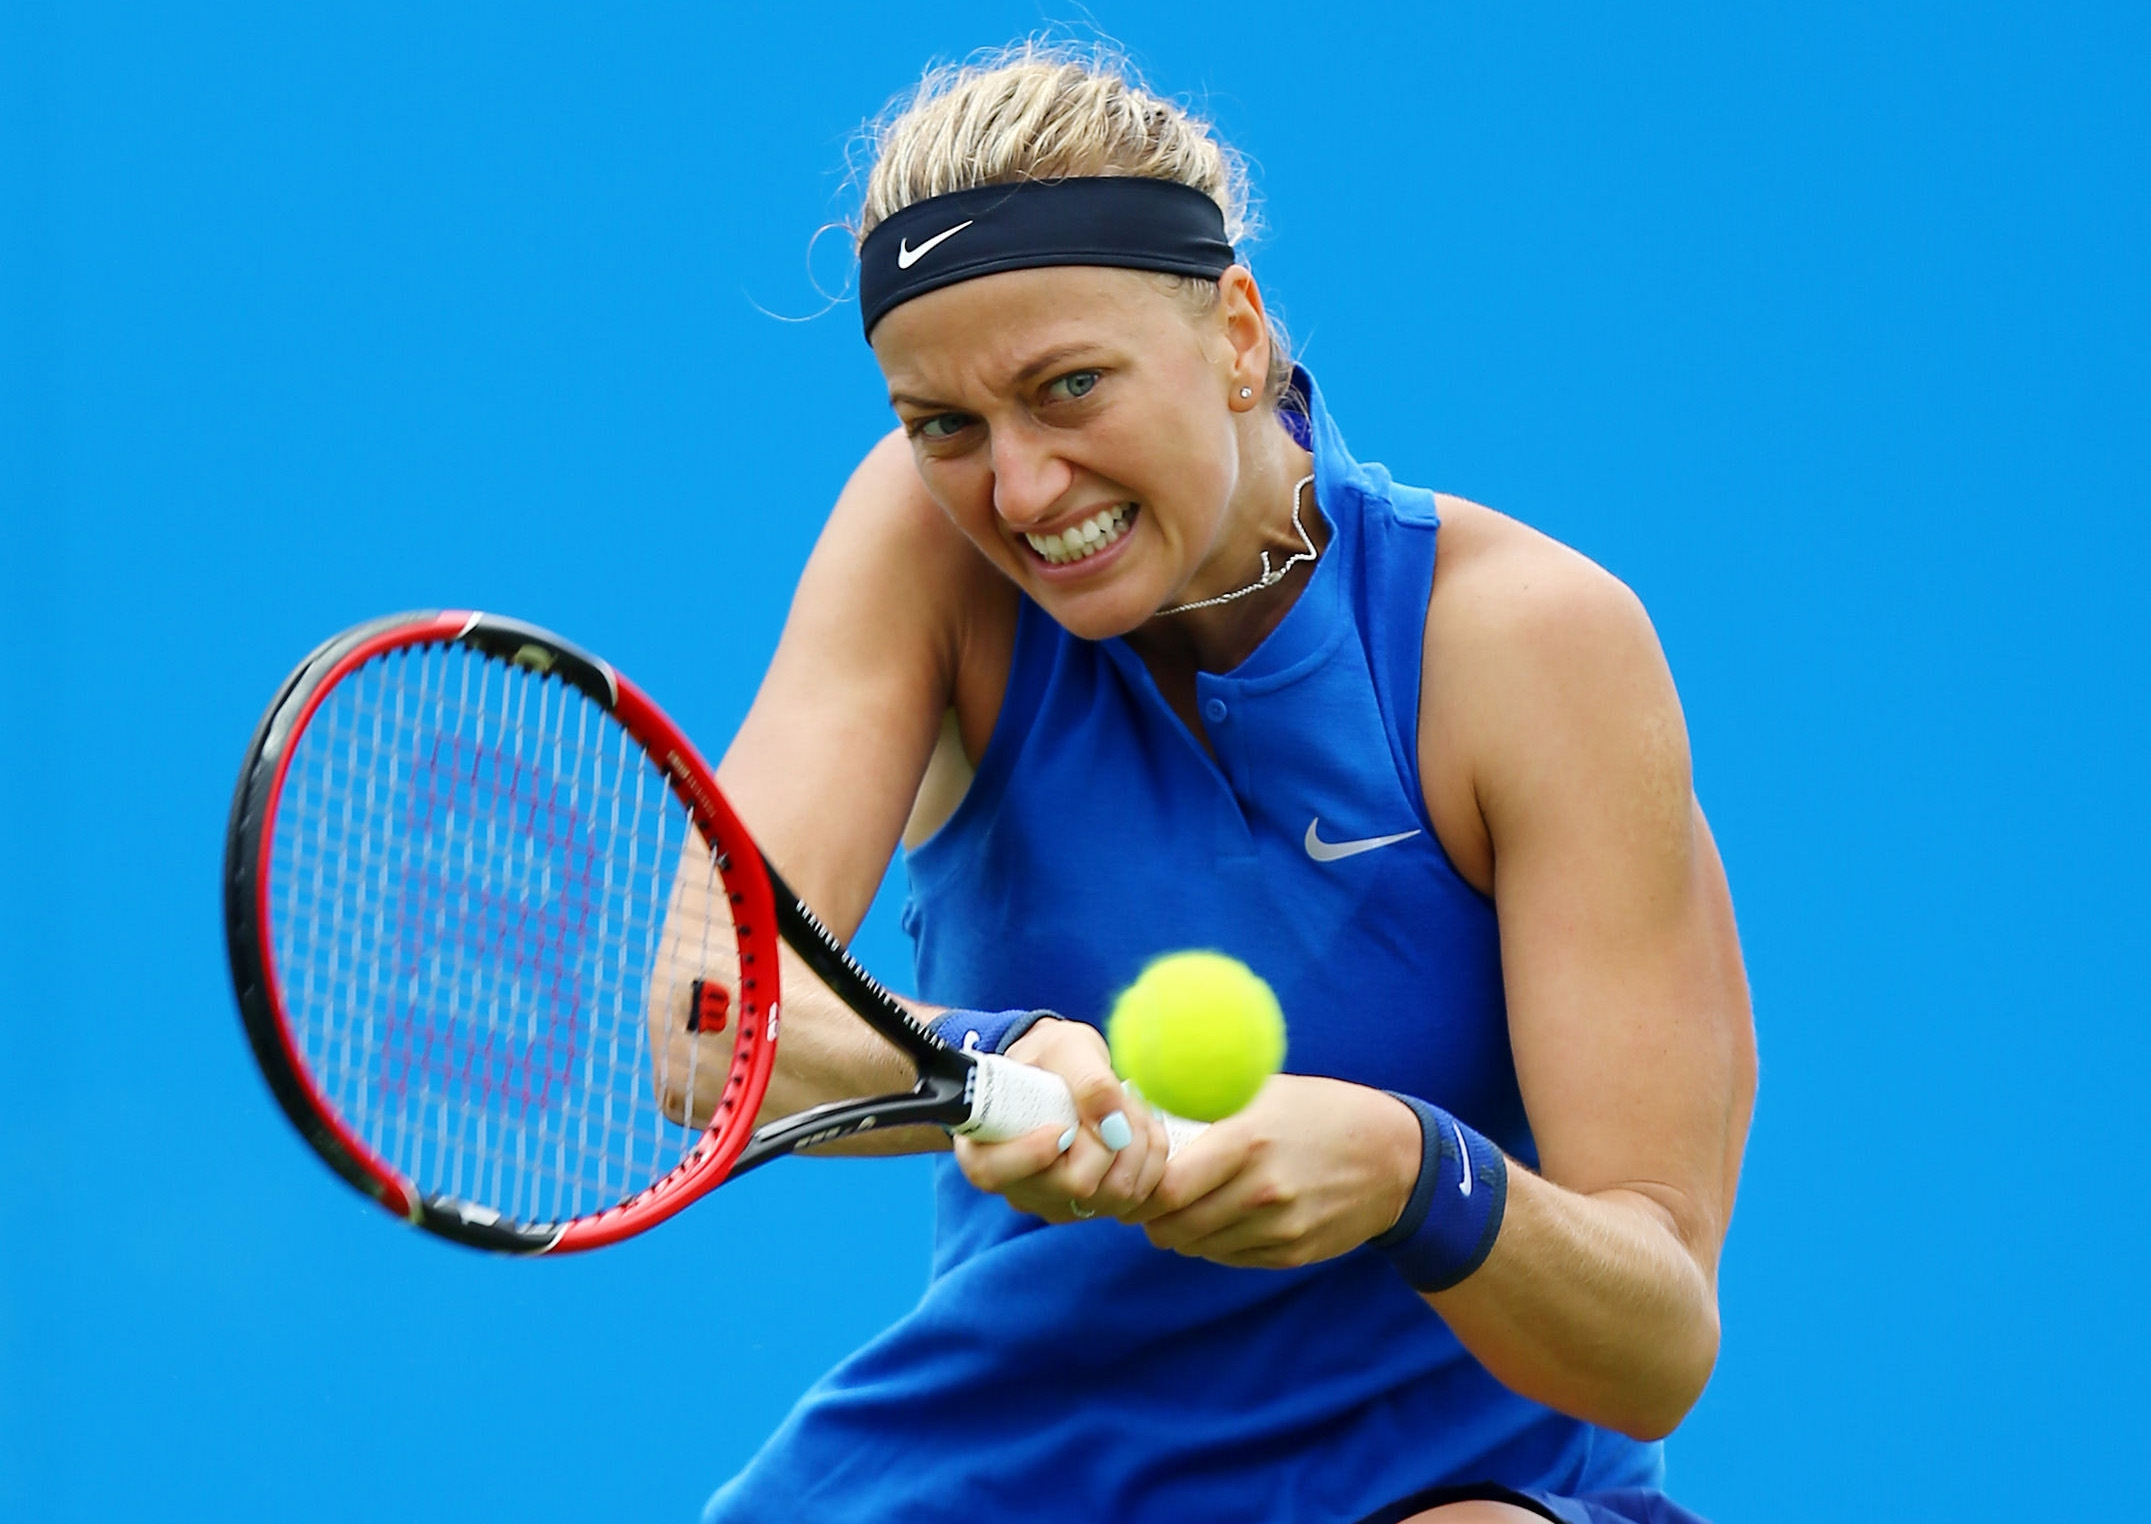 CAPTION CORRECTS THE MONTH - Czech Republic's Petra Kvitova returns the ball to Hungary's Timea Babos during day two of the 2016 Eastbourne International women's tennis tournament at Devonshire Park, Eastbourne, England, Tuesday, June 21, 2016. (Gareth Fu